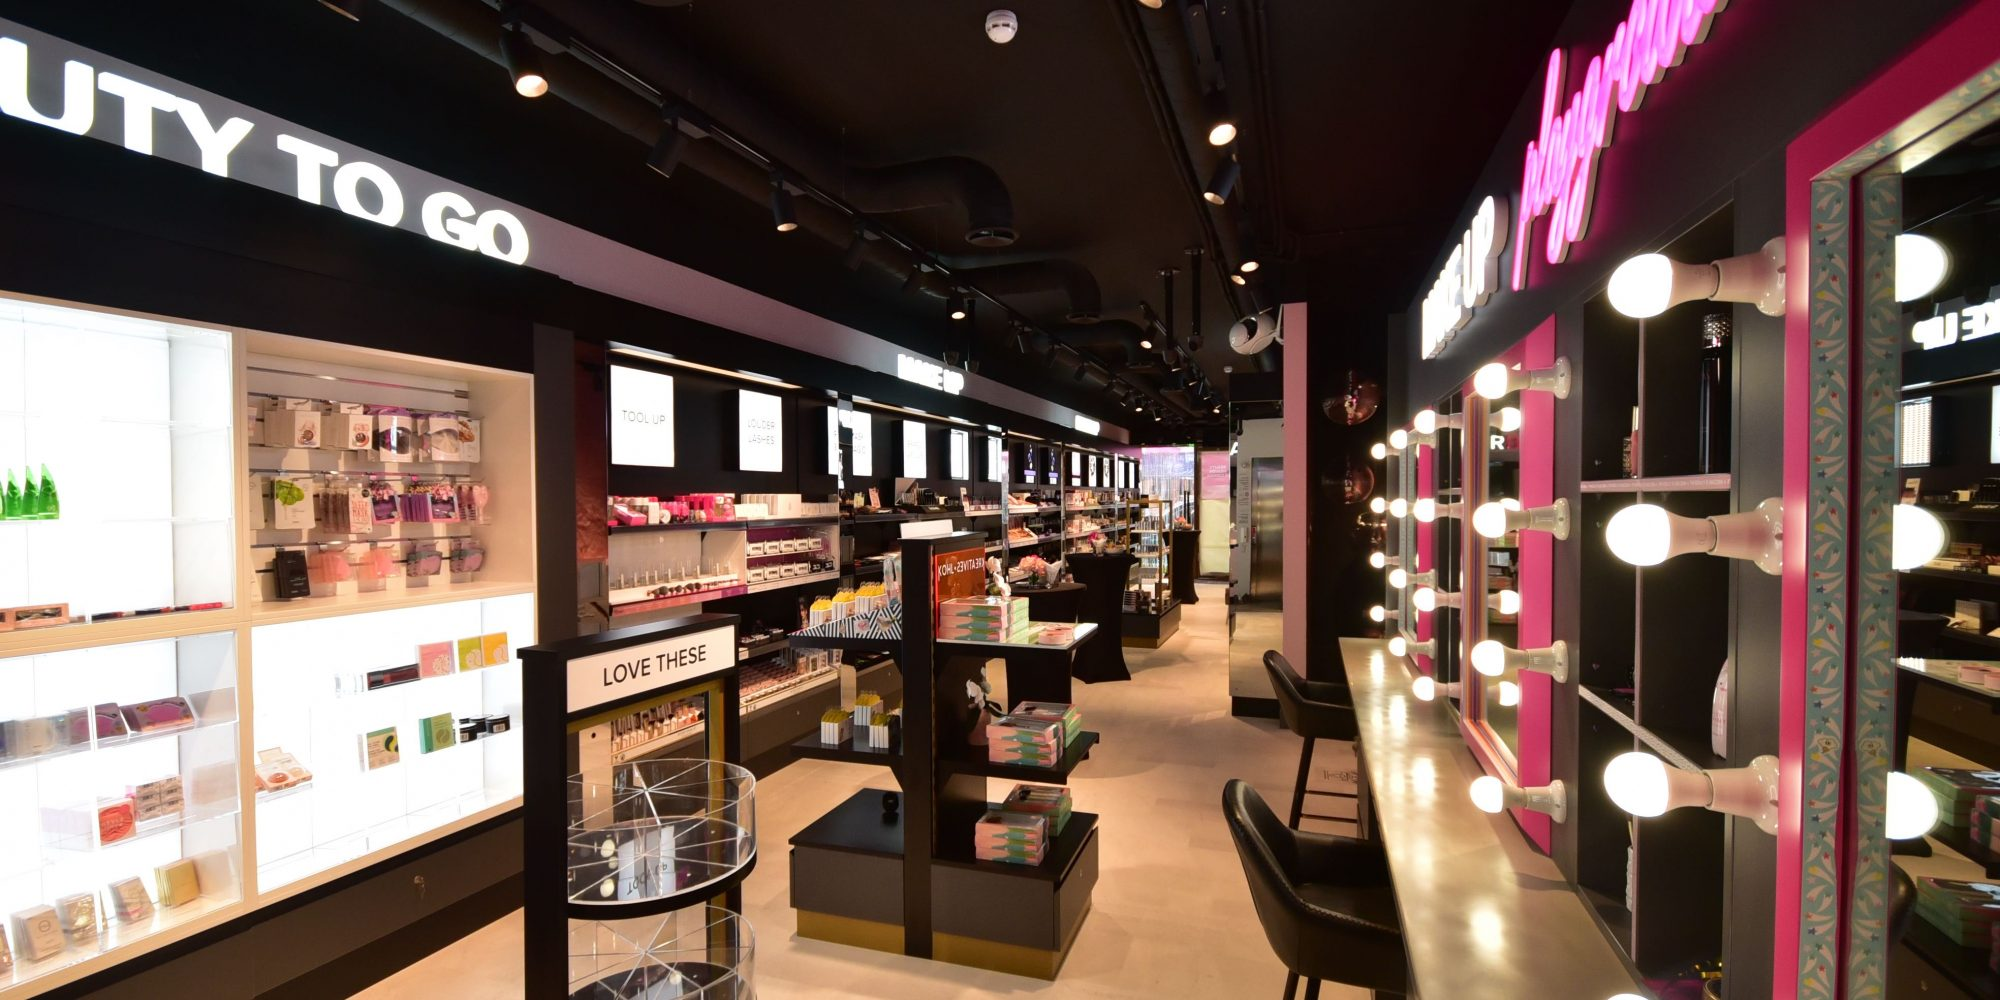 New Store AfterBeauty Moves Into The Millennial-Centered Beauty Retail Void Sephora Has Left In London